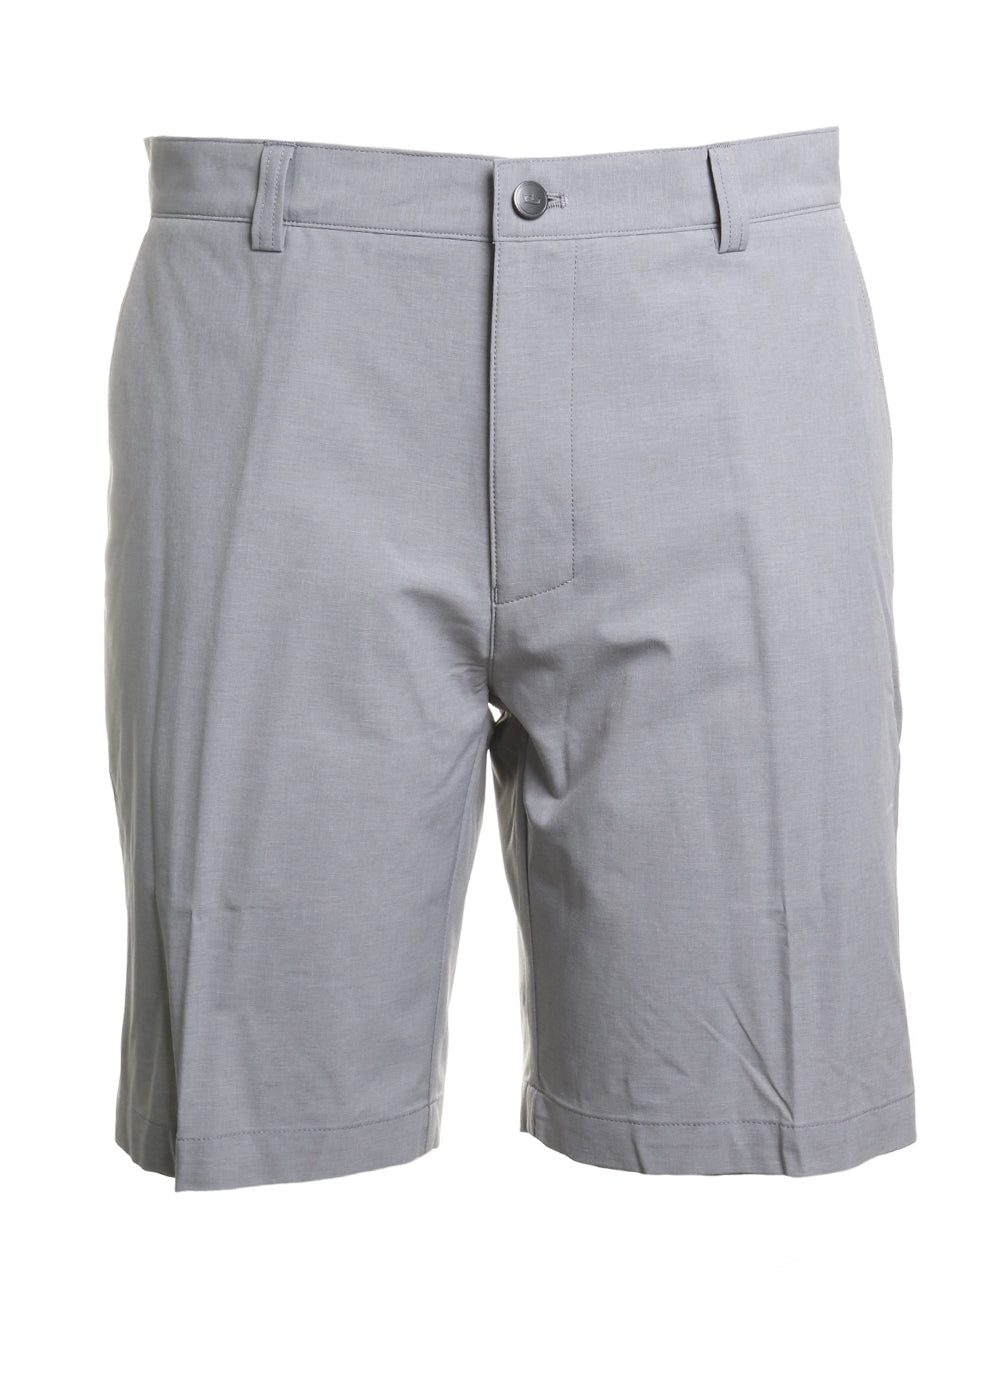 Shackleford Hybrid Melange Short